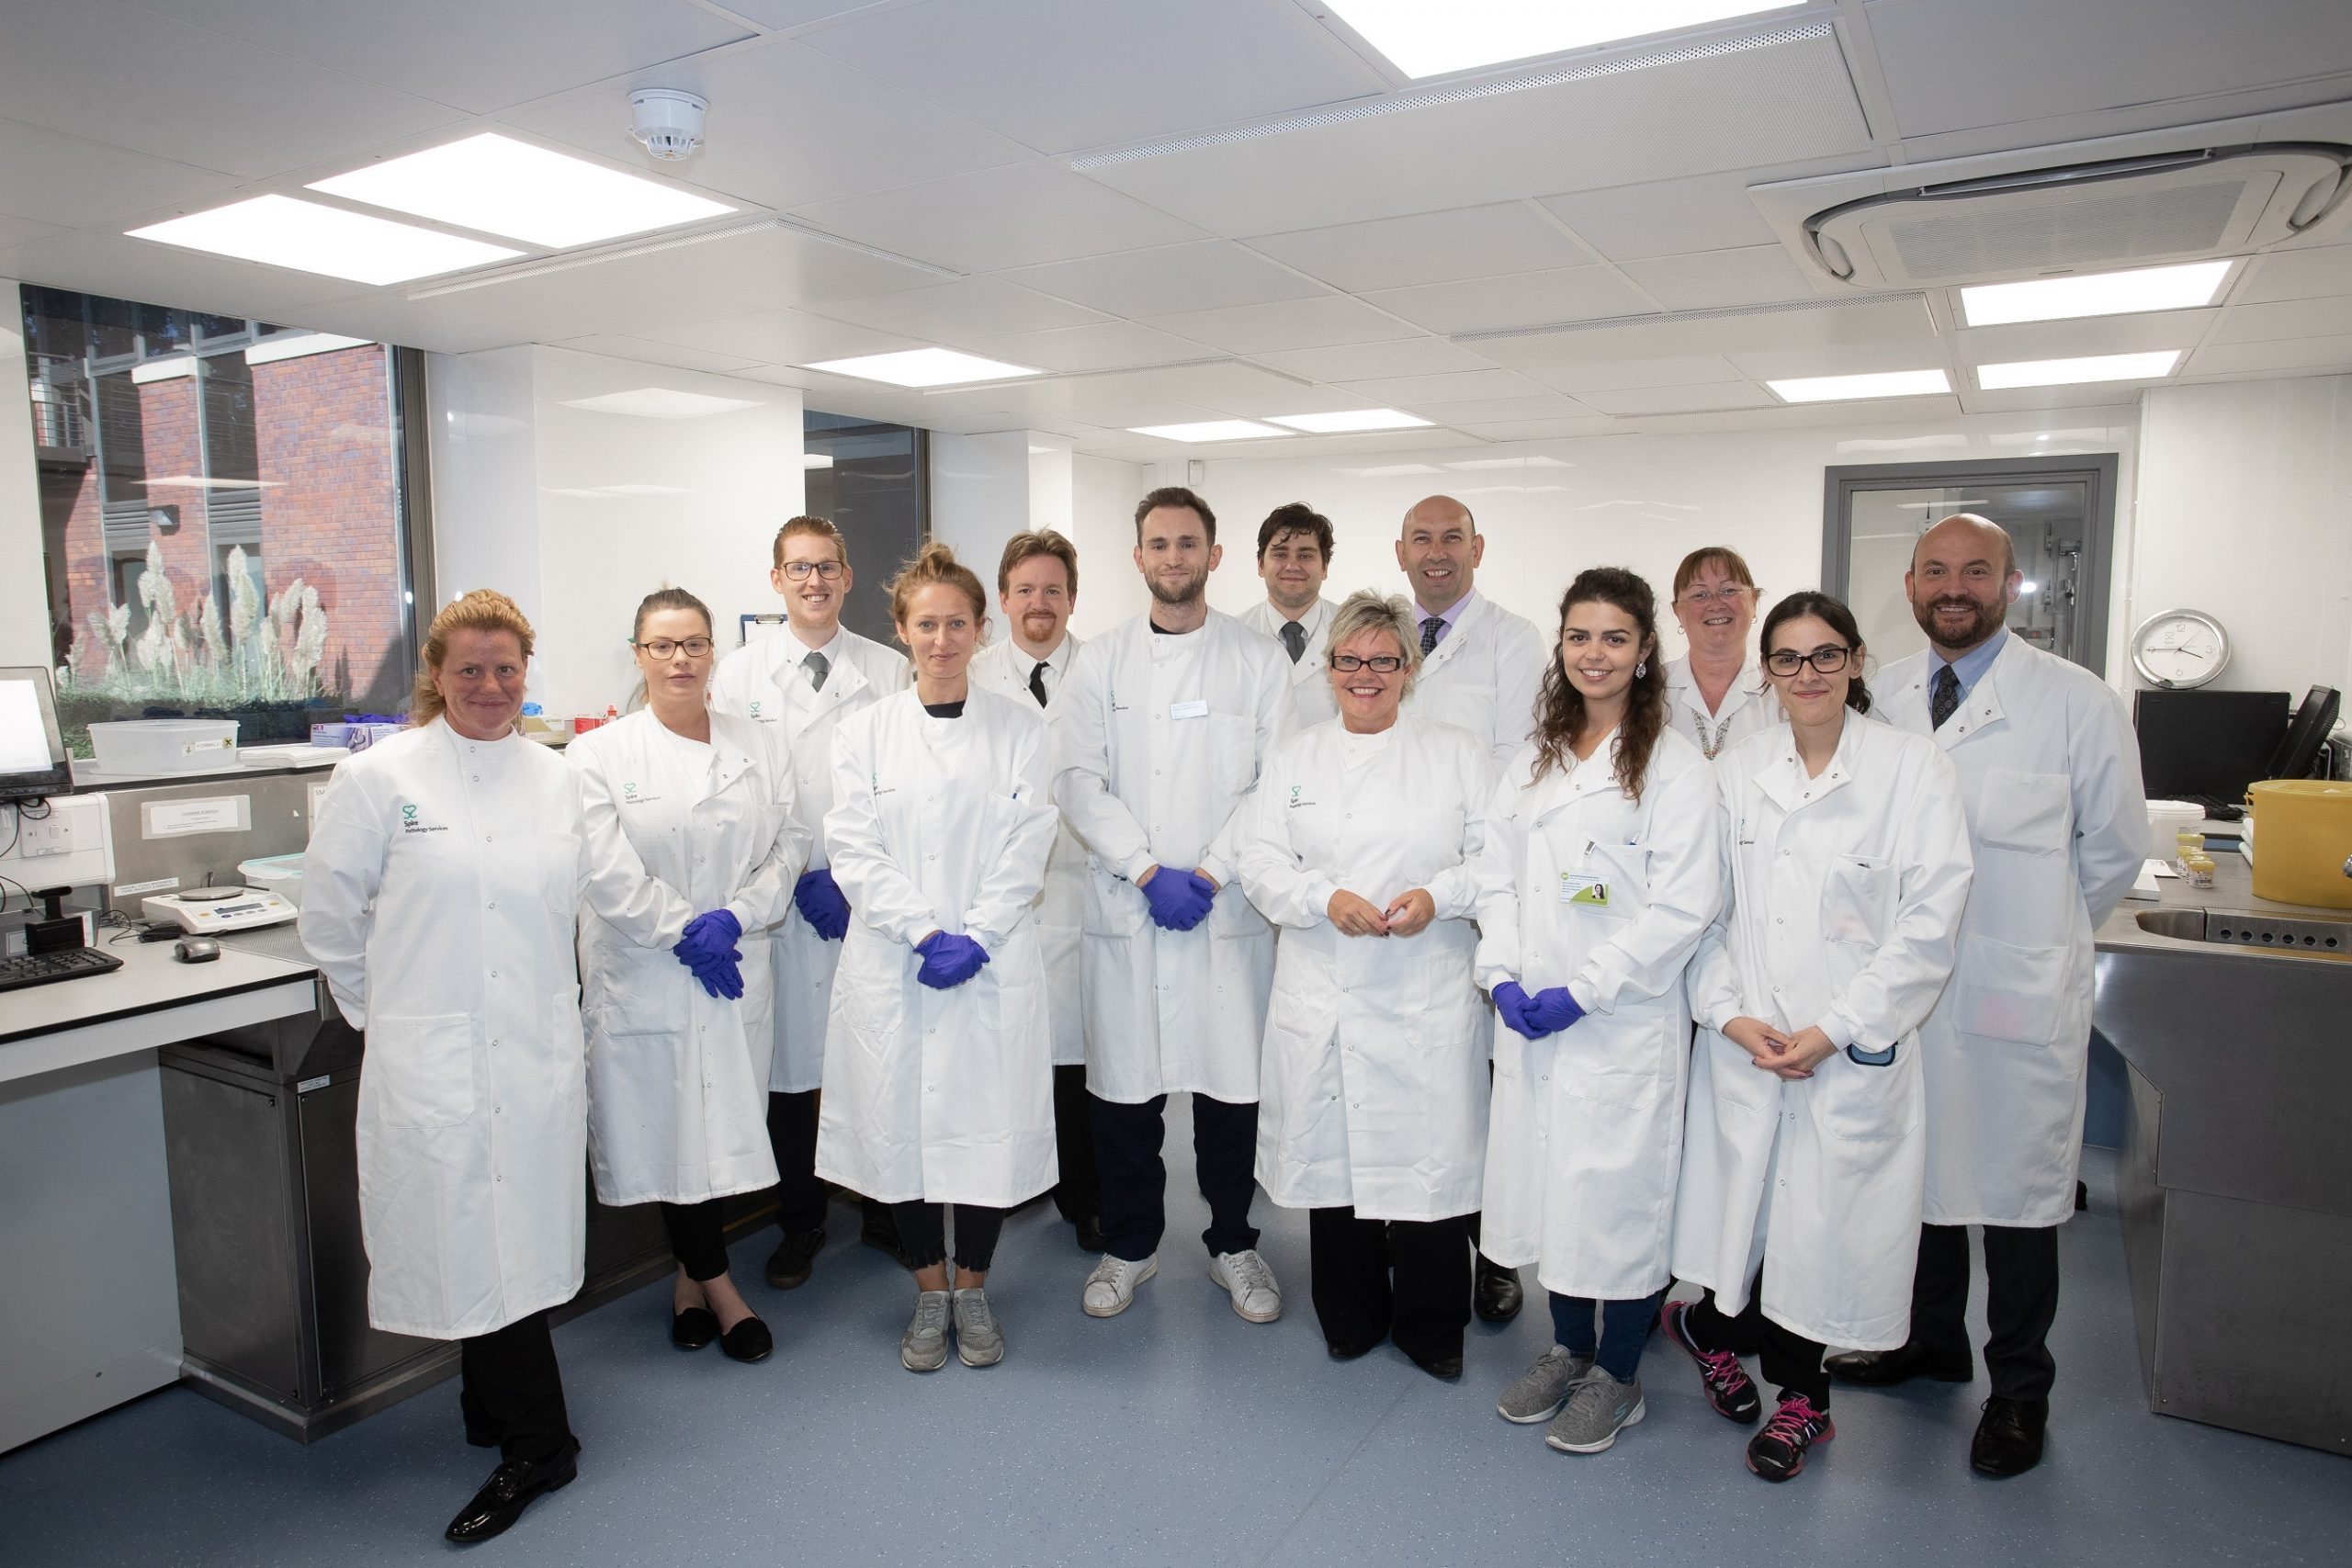 Far right: Dr Jean-Jacques (JJ) de Gorter, Group Medical Director at Spire Healthcare with the Histology Centre team in their new laboratory at Parkway